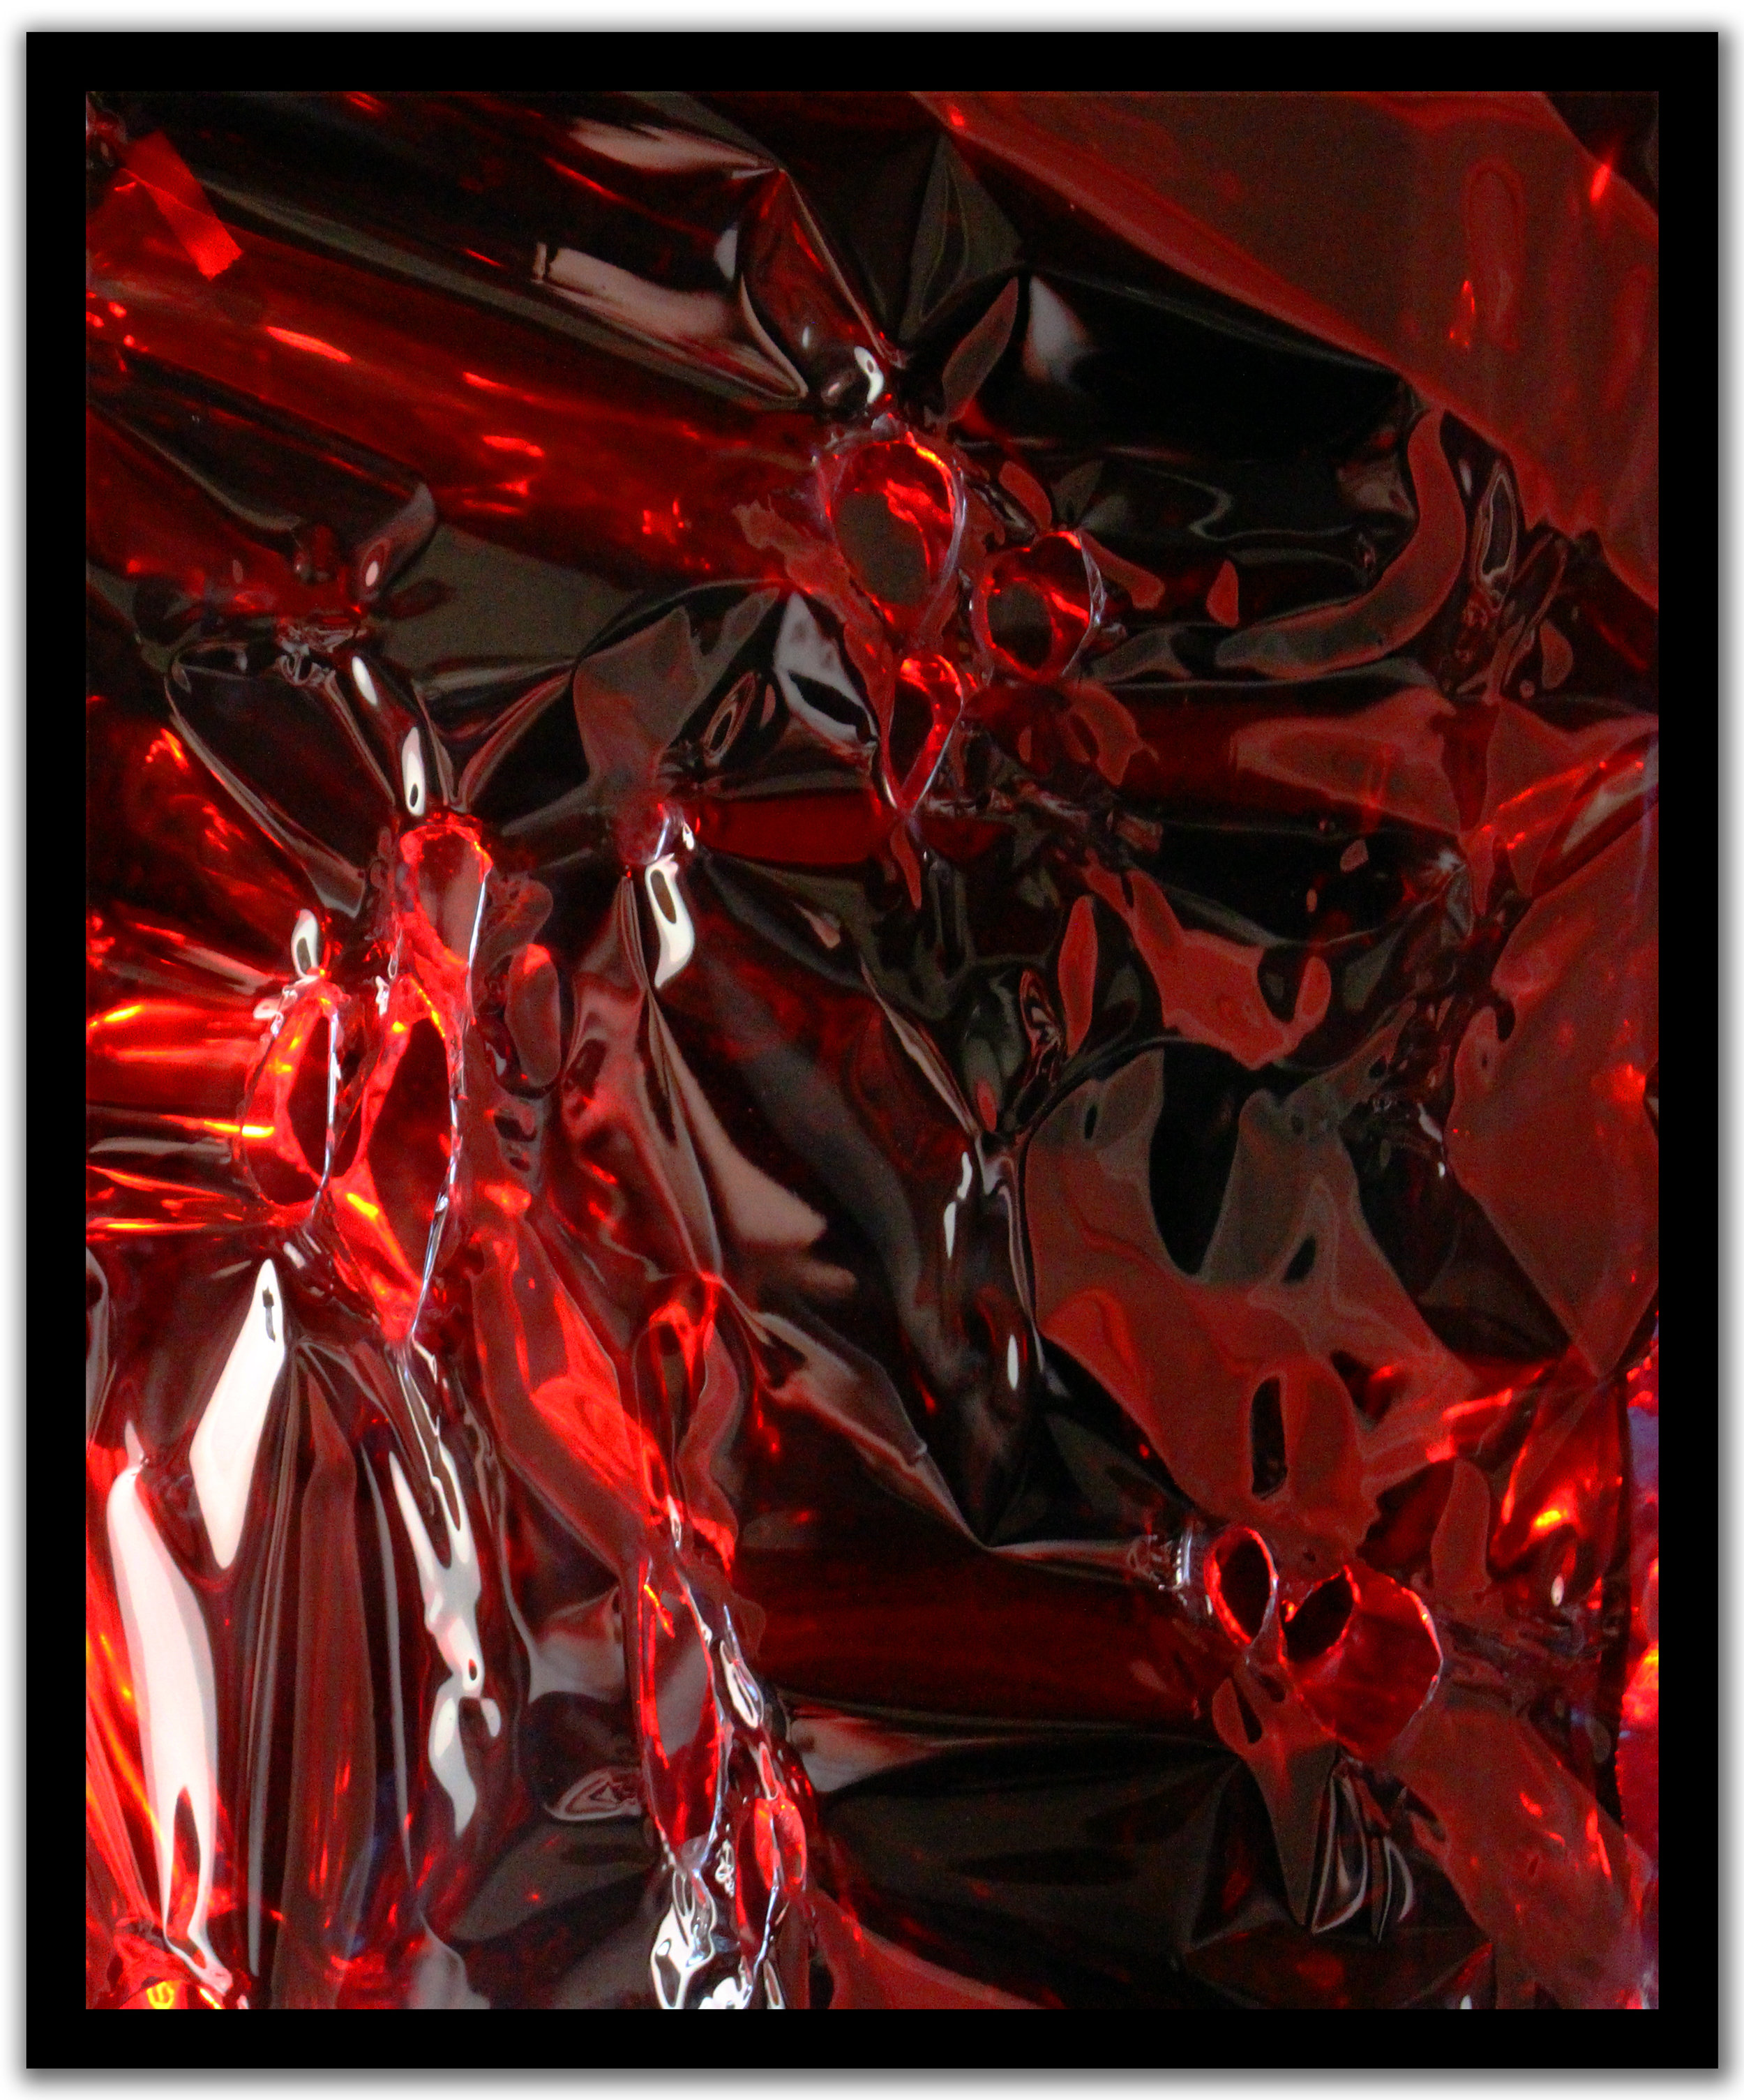 Falling Down The Universe,  Dynamic Light Art Boxes  Materials:  programmable LED lighting, reflective materials, frame  Dimensions:  48 x 24 x 3 in